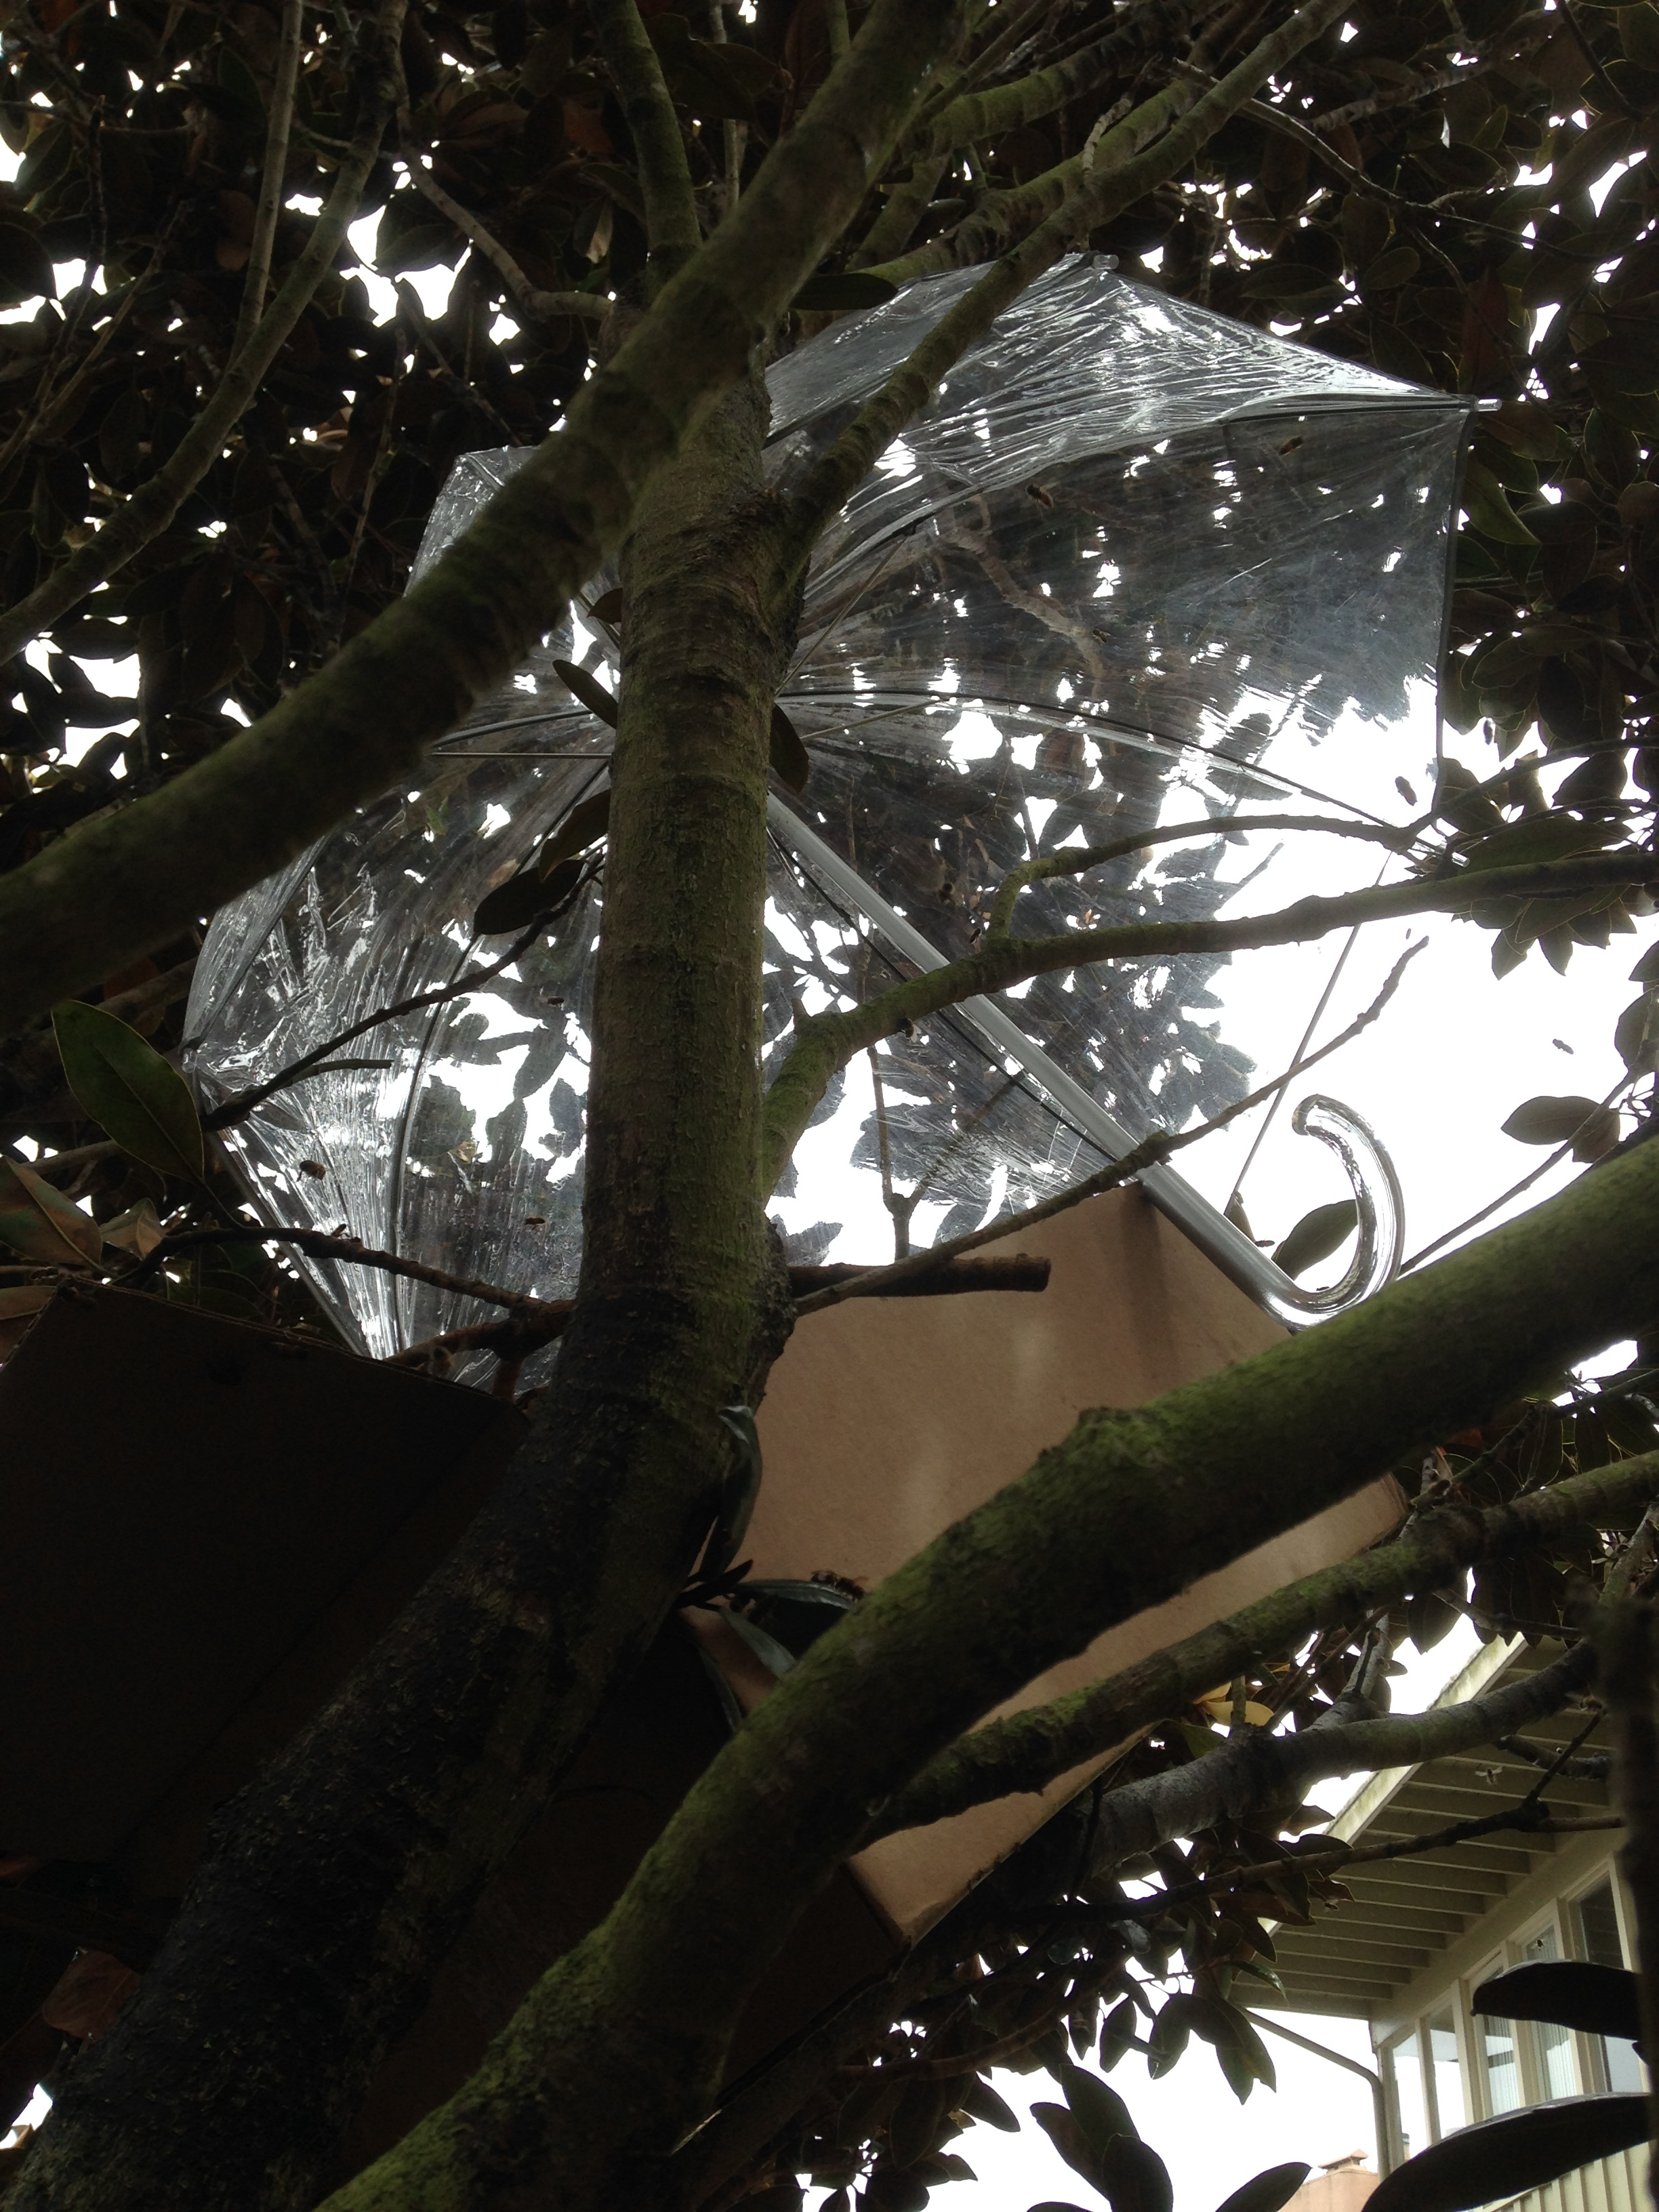 This swarm was caught in a magnolia on a rainy day, so I put an old umbrella over them to help them dry out.